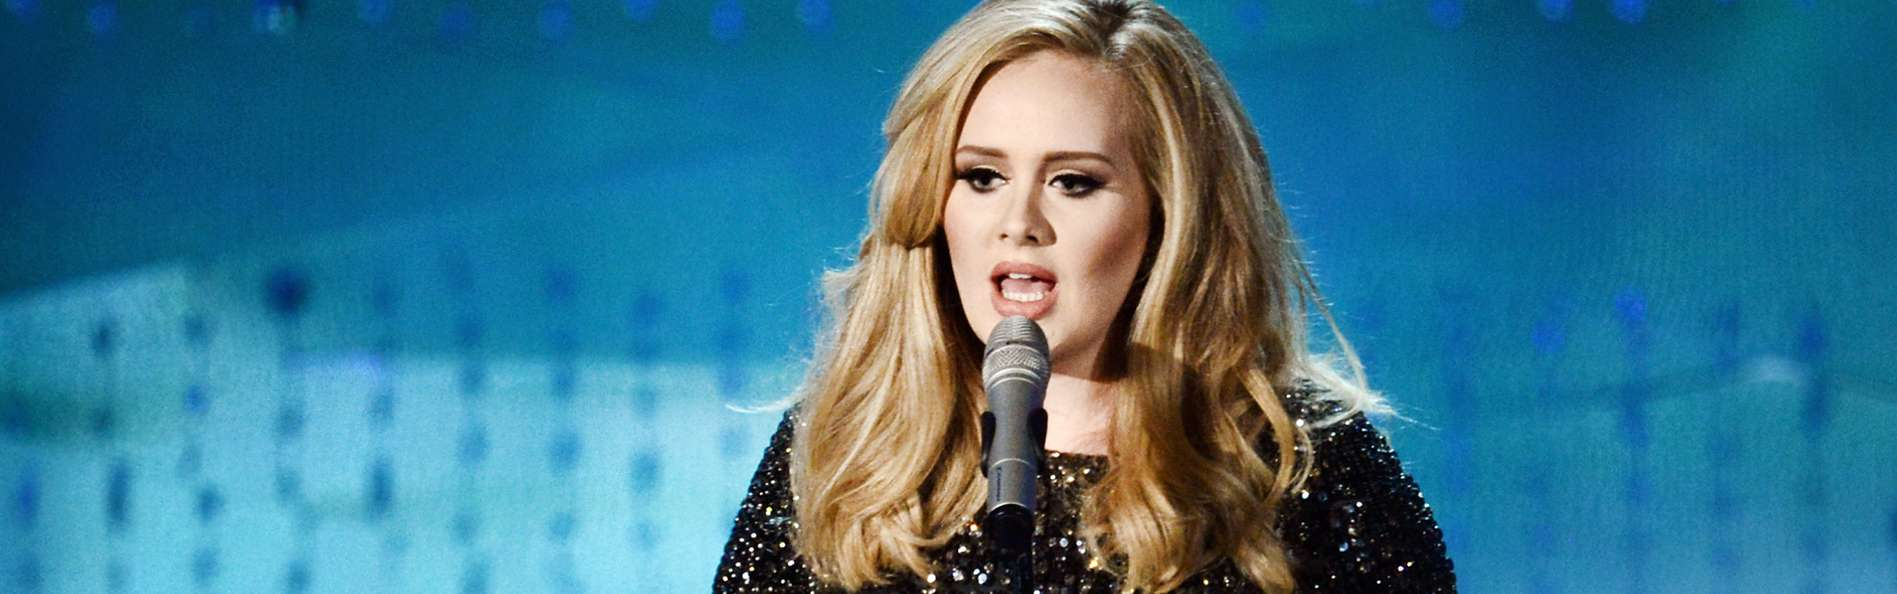 adele Foto: Getty Images